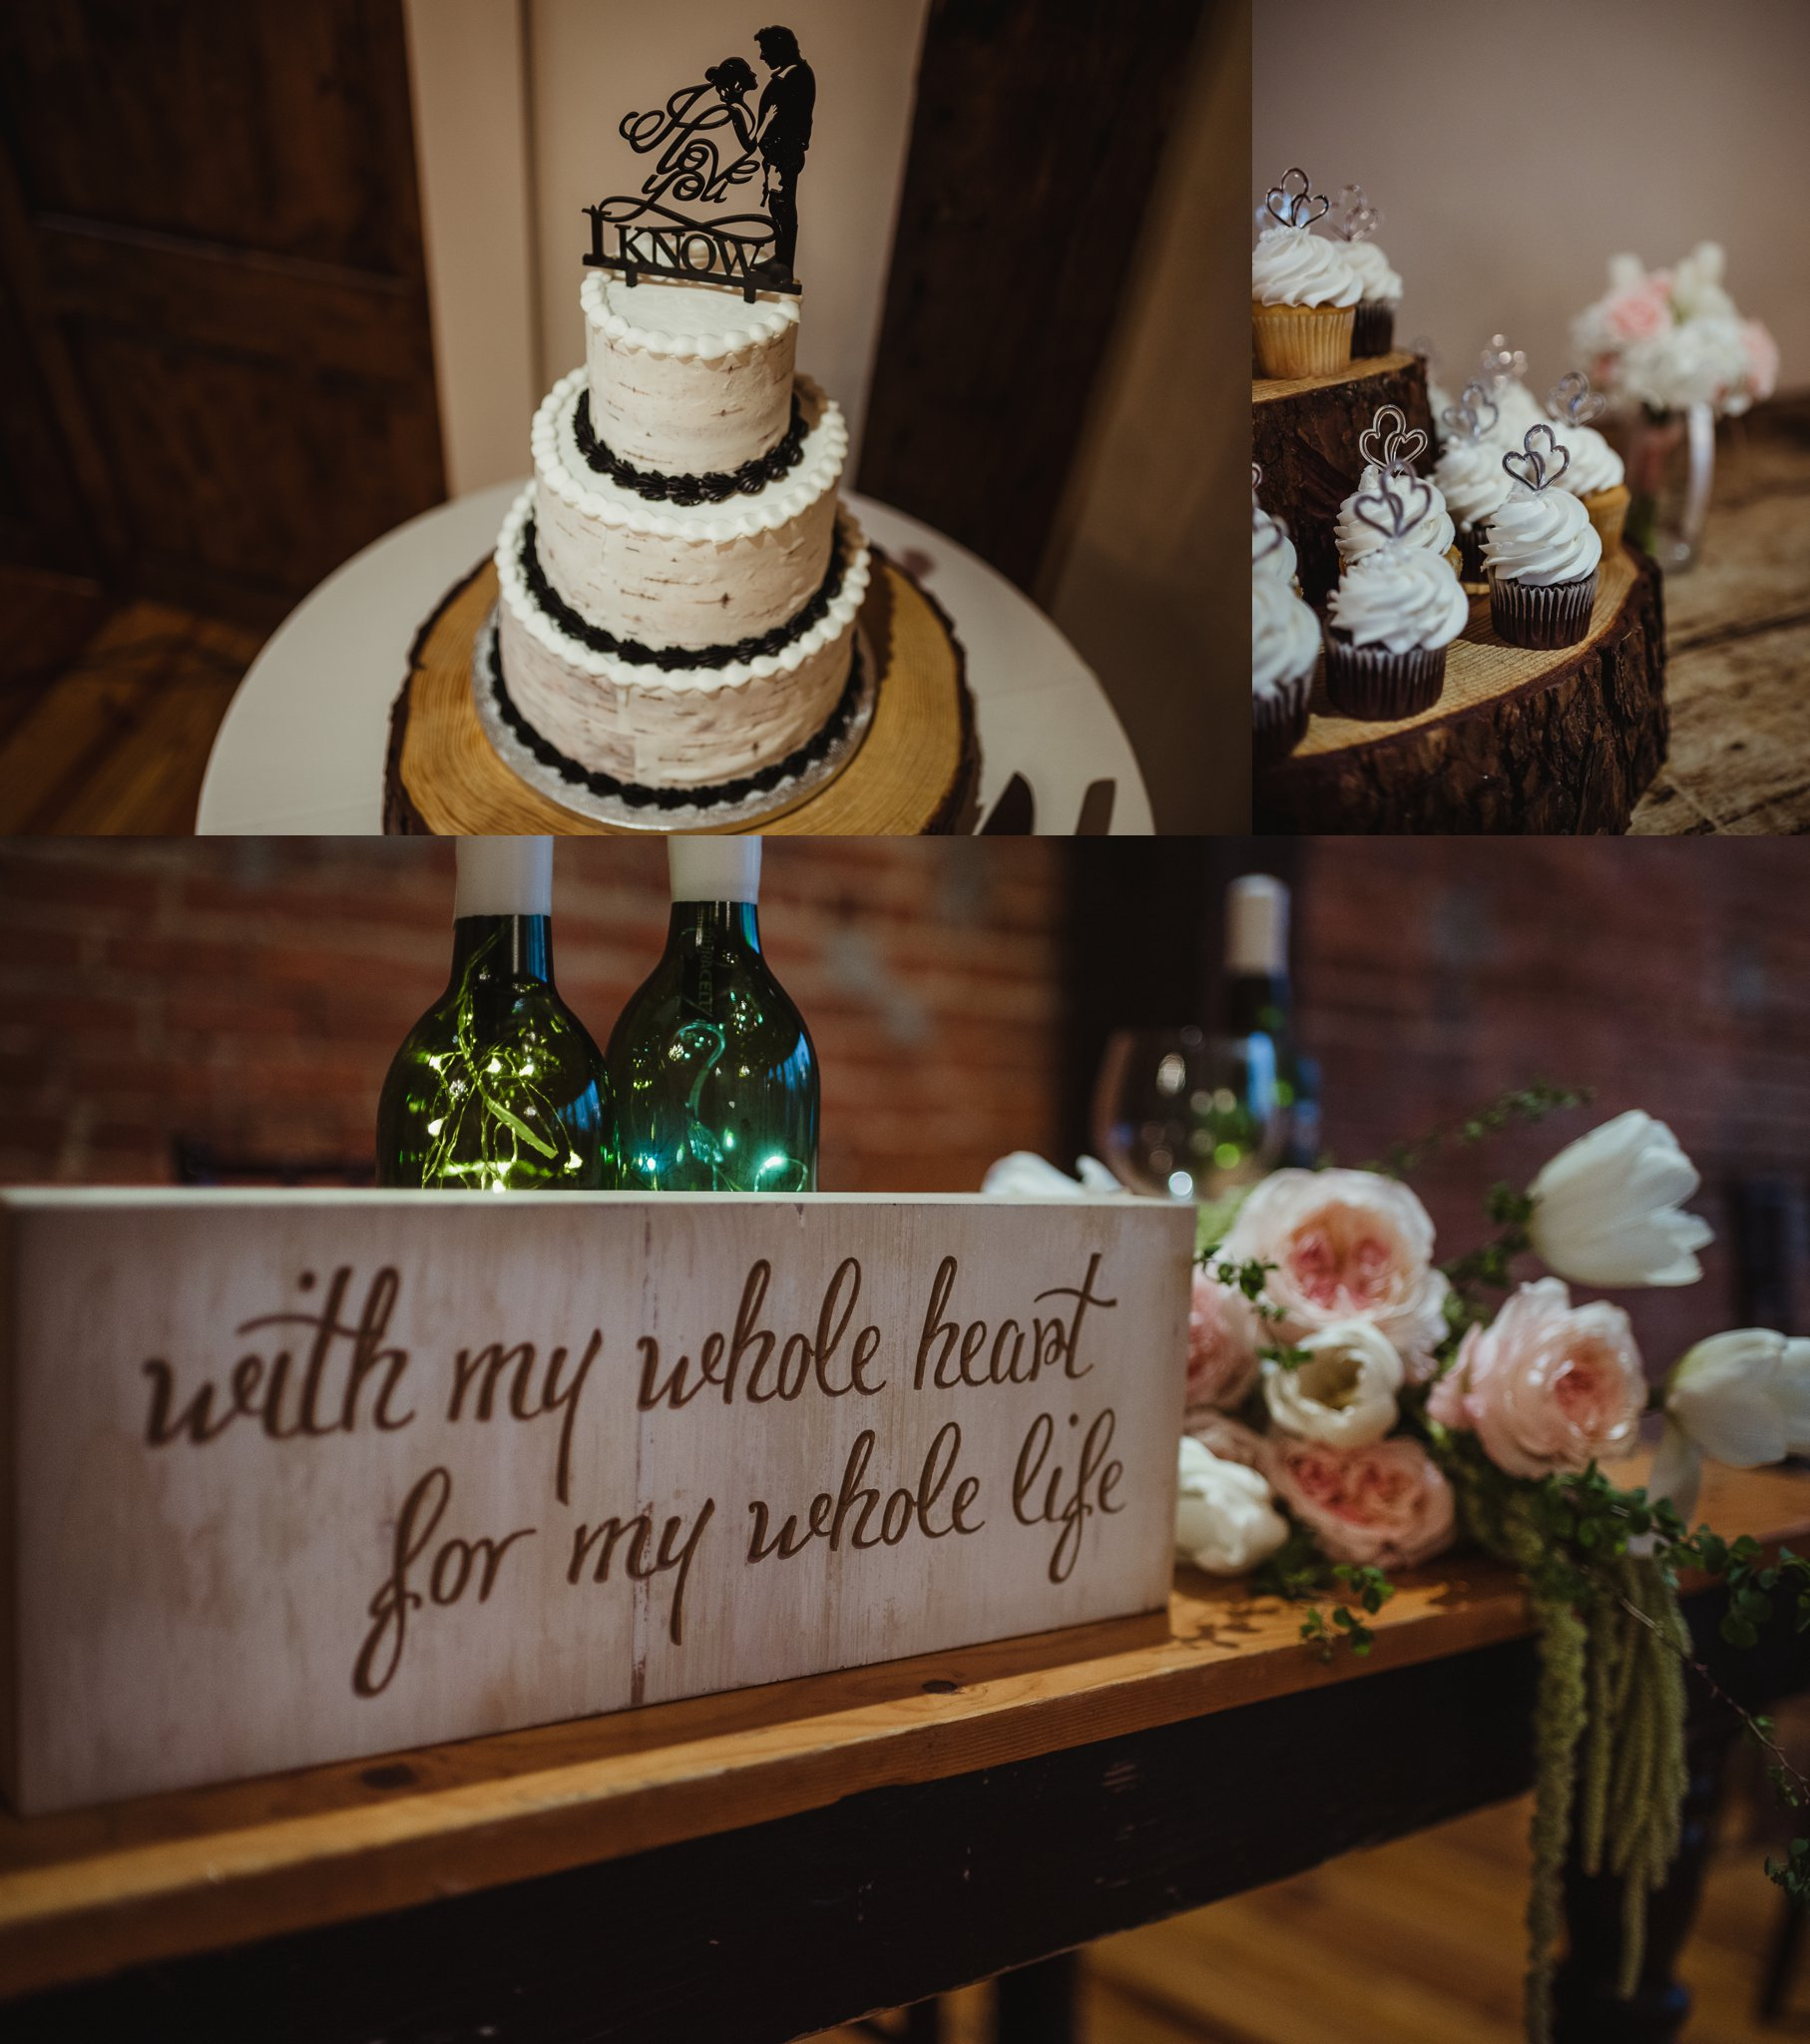 Wedding details at their reception include cake with a Star Wars topper, cupcakes, and homemade wooden signs at Cross and Main in Youngsville, NC, images taken by Rose Trail Images.